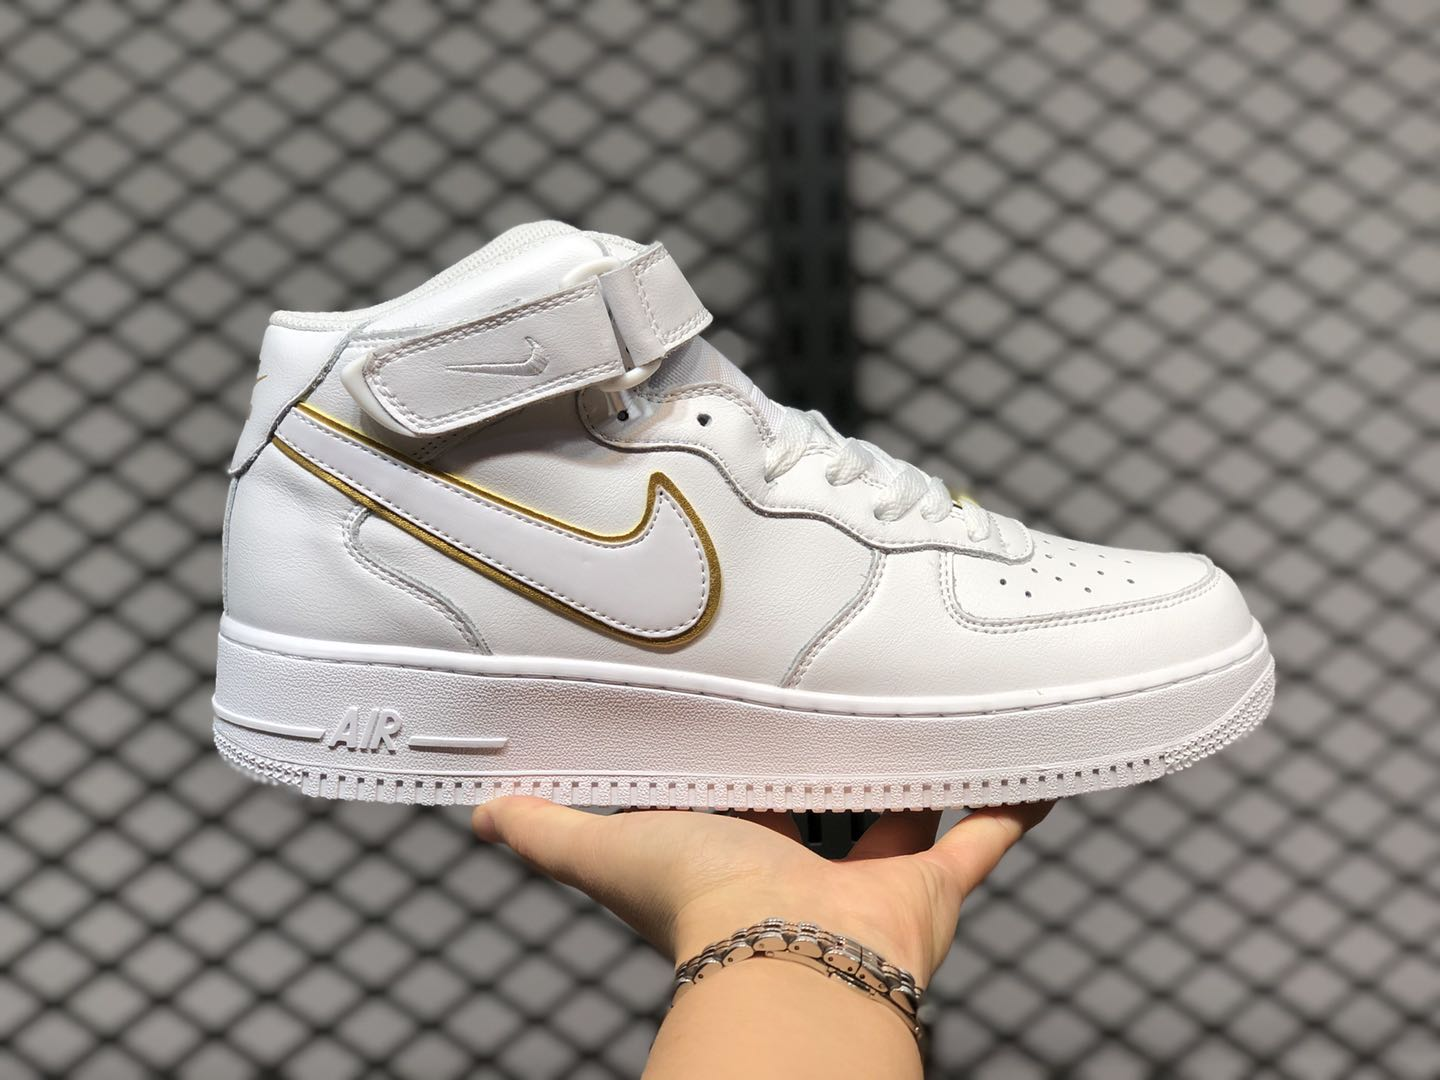 Nike Air Force 1 Mid White/Gold